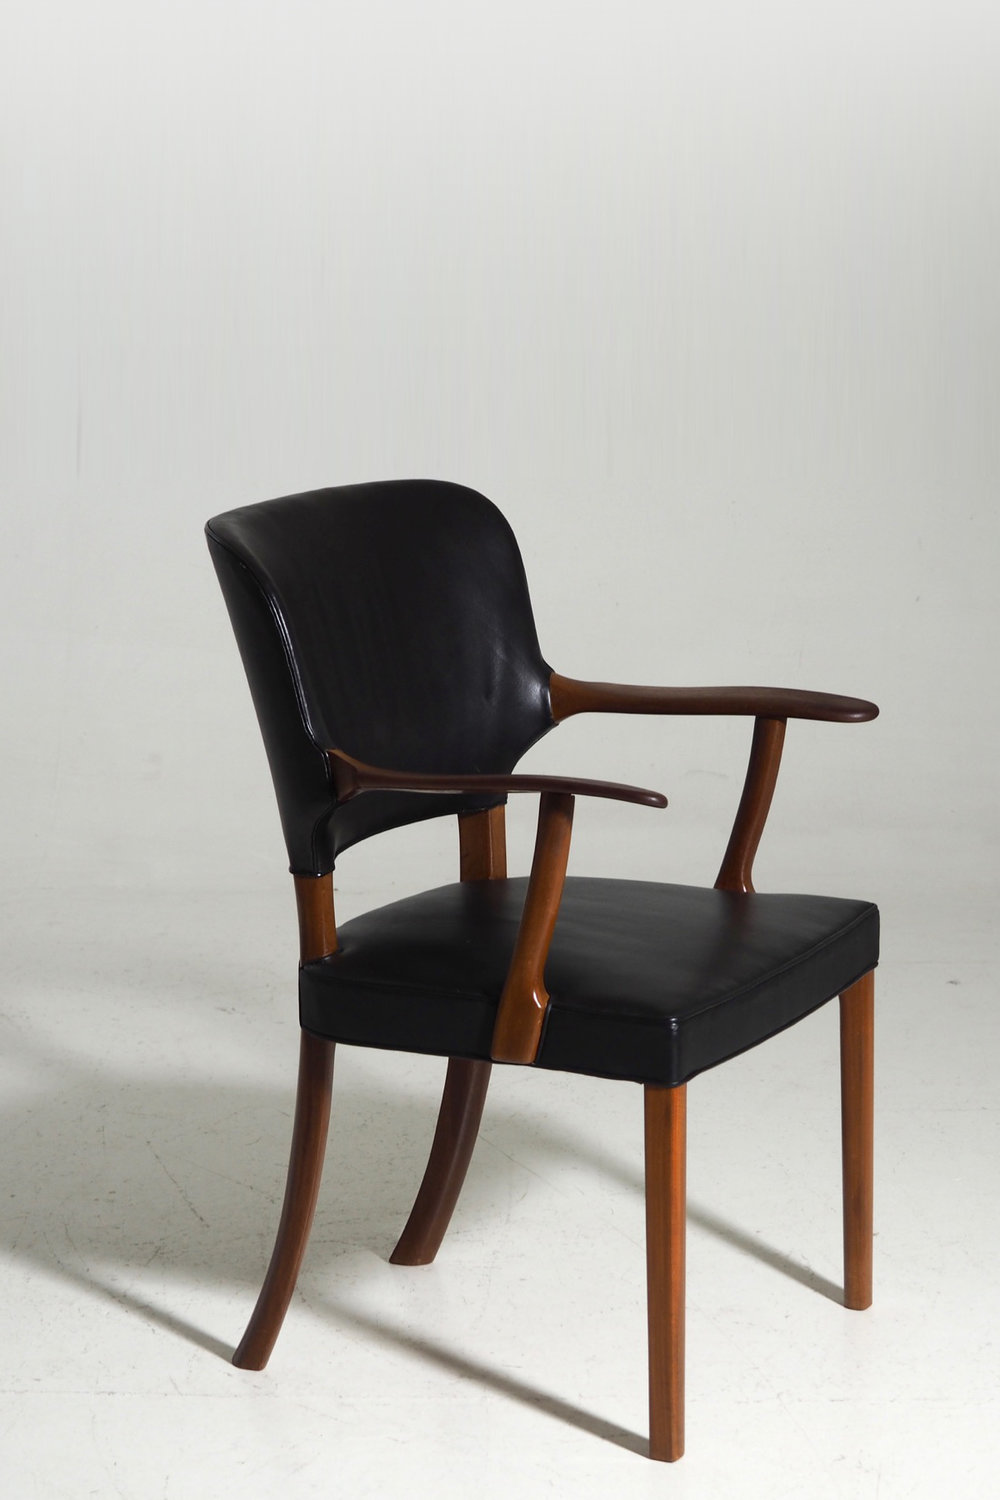 Rare armchair in mahogany and black leather